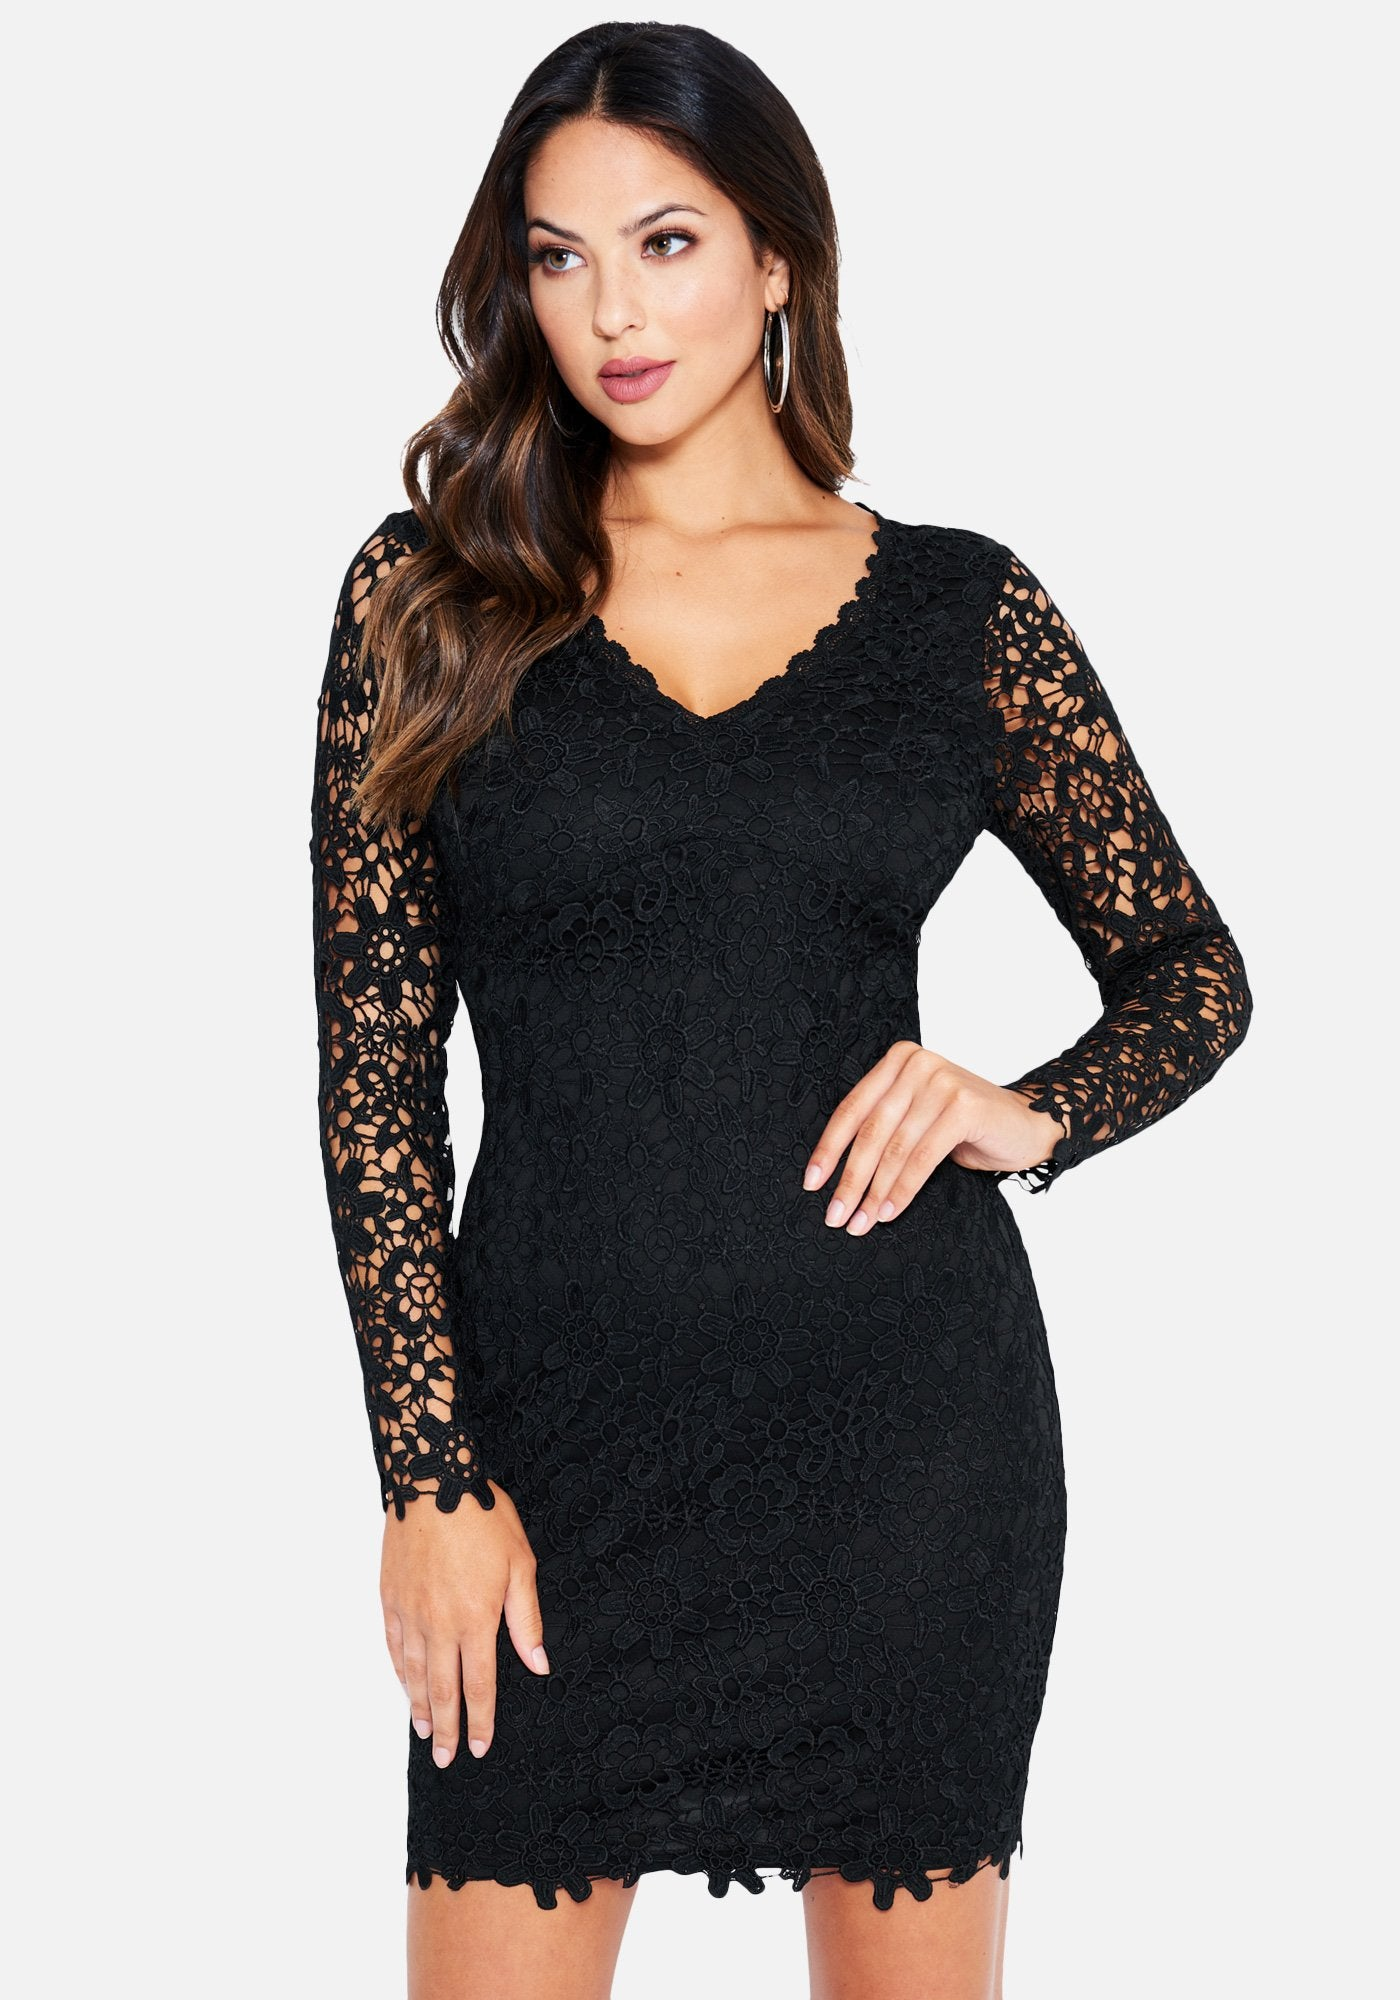 Bebe Women's Allover Lace Long Sleeve Dress, Size 2 in Black Polyester